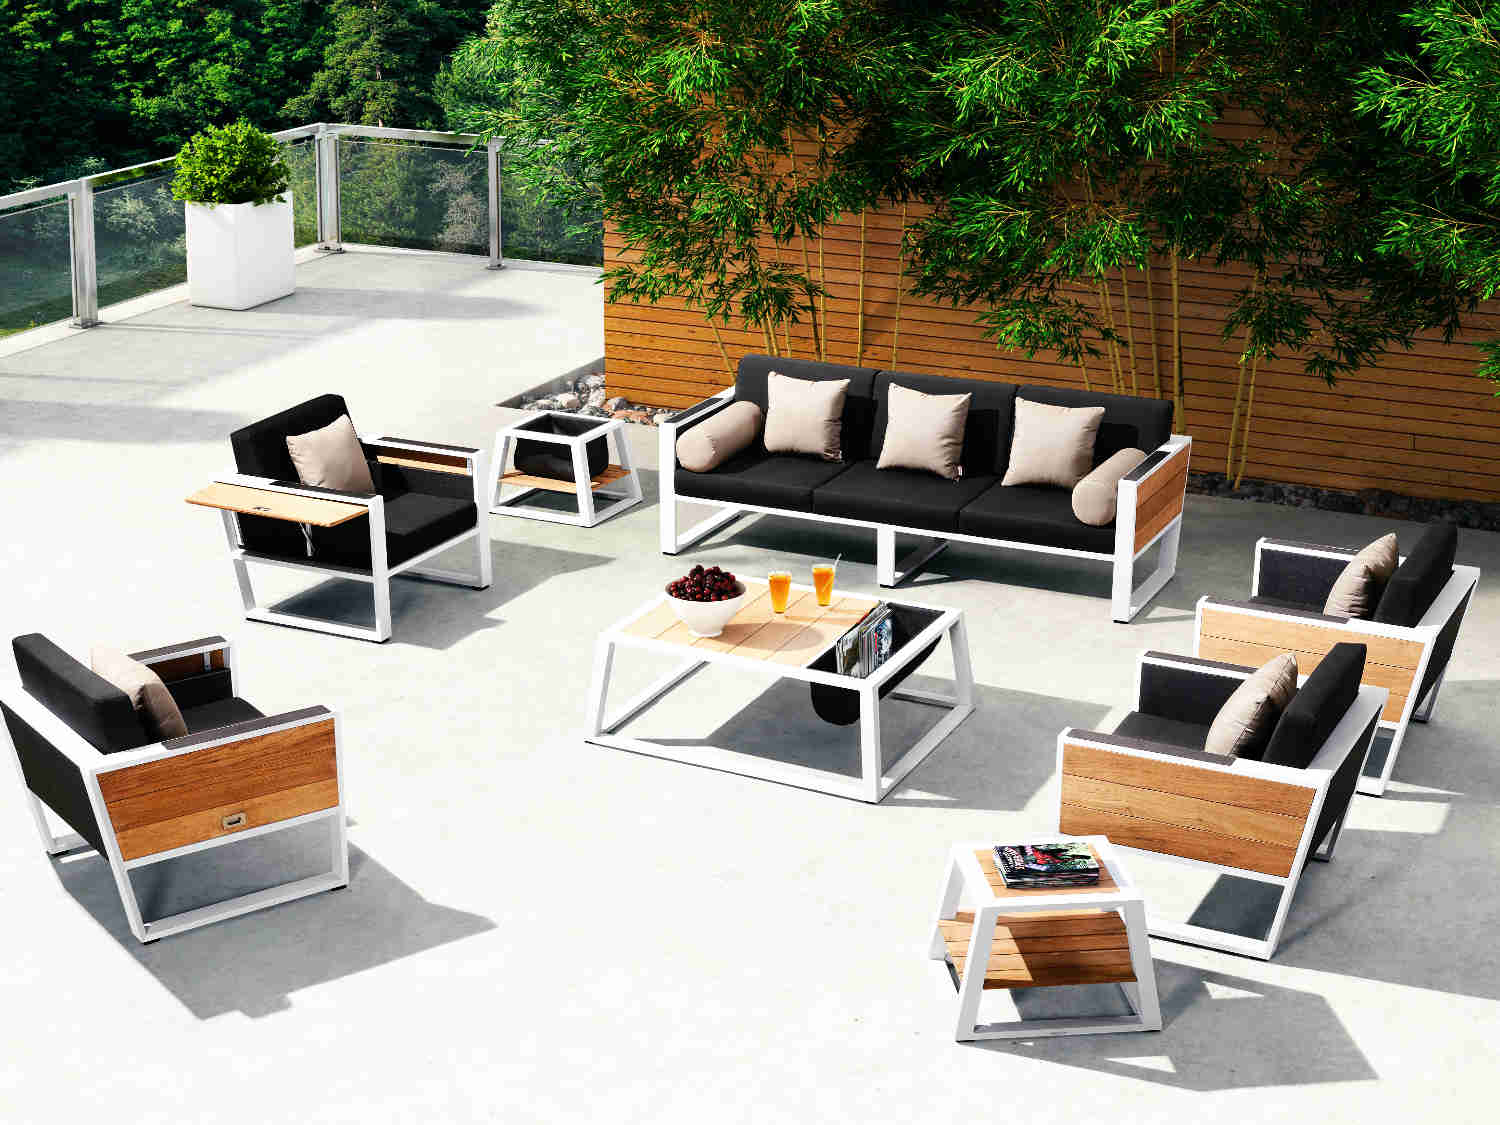 Exklusive Loungemöbel Exklusive Loungemöbel 4seasons Madoera Living Sessel